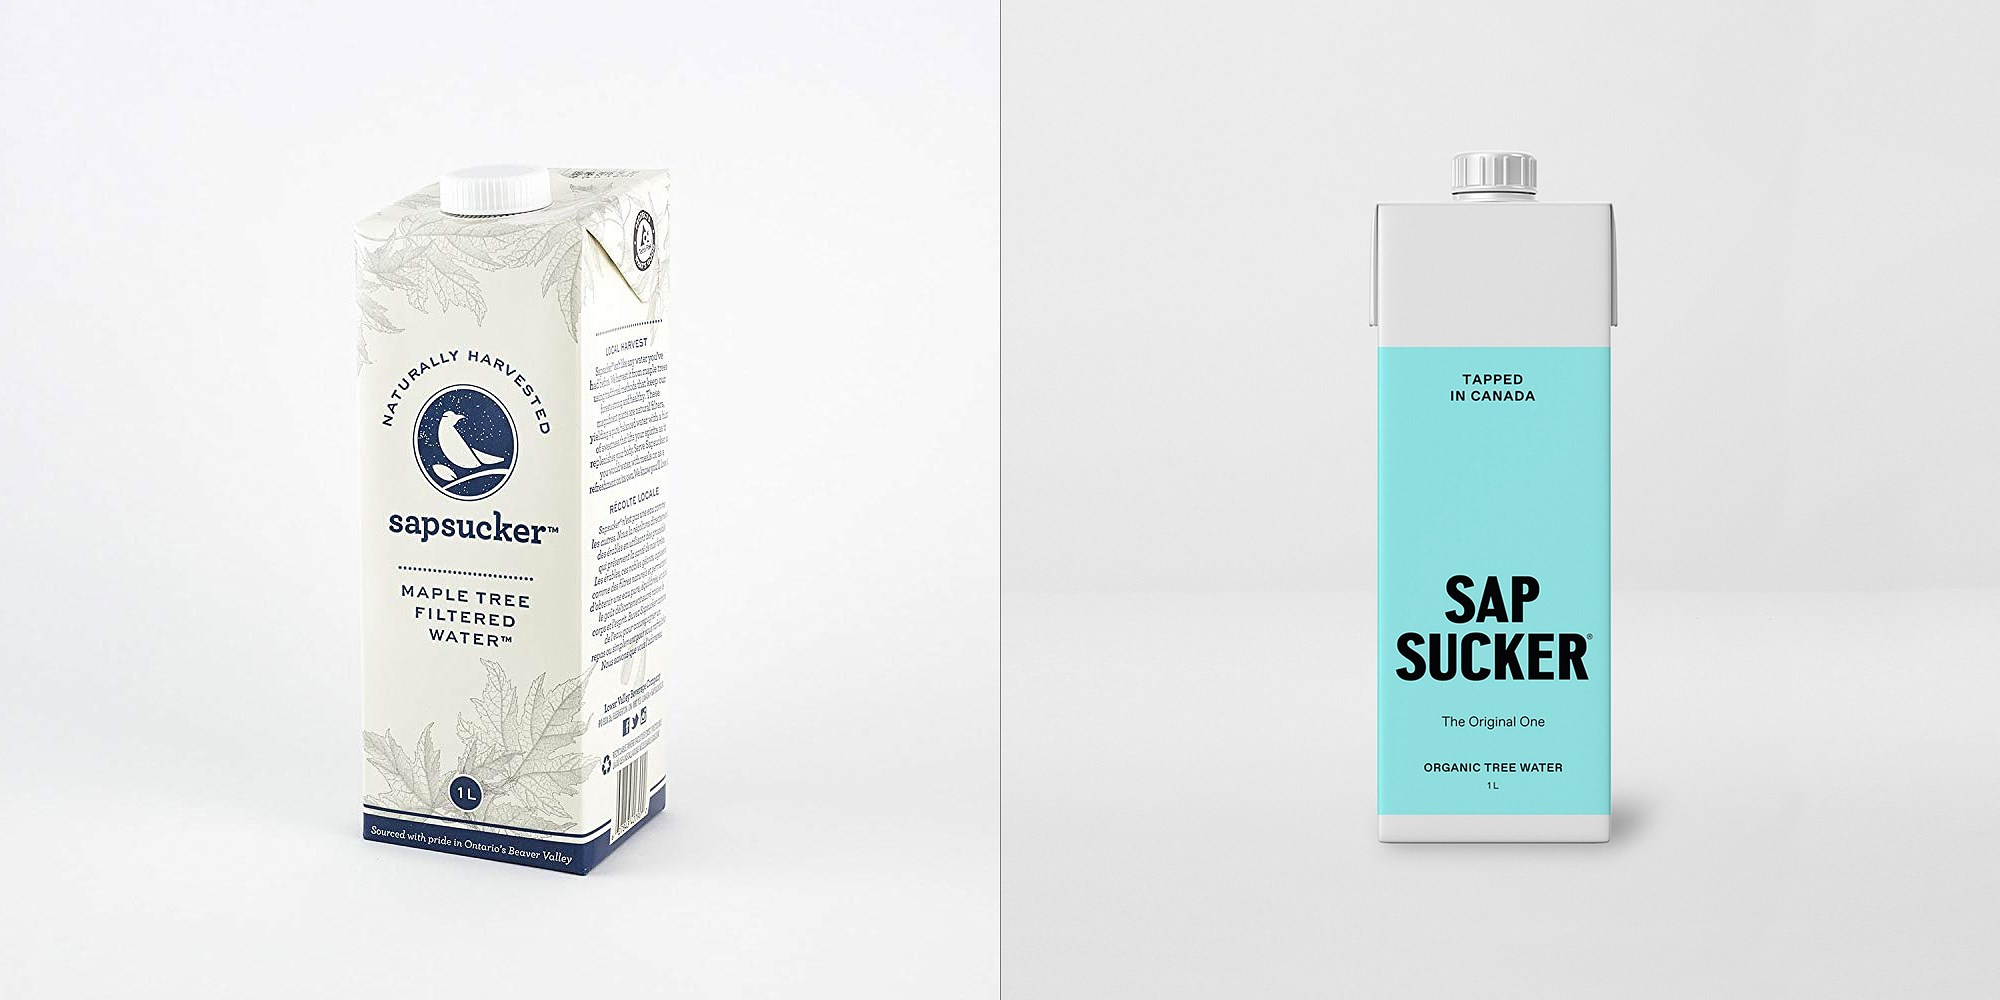 sapsucker_packaging_before_after.jpg